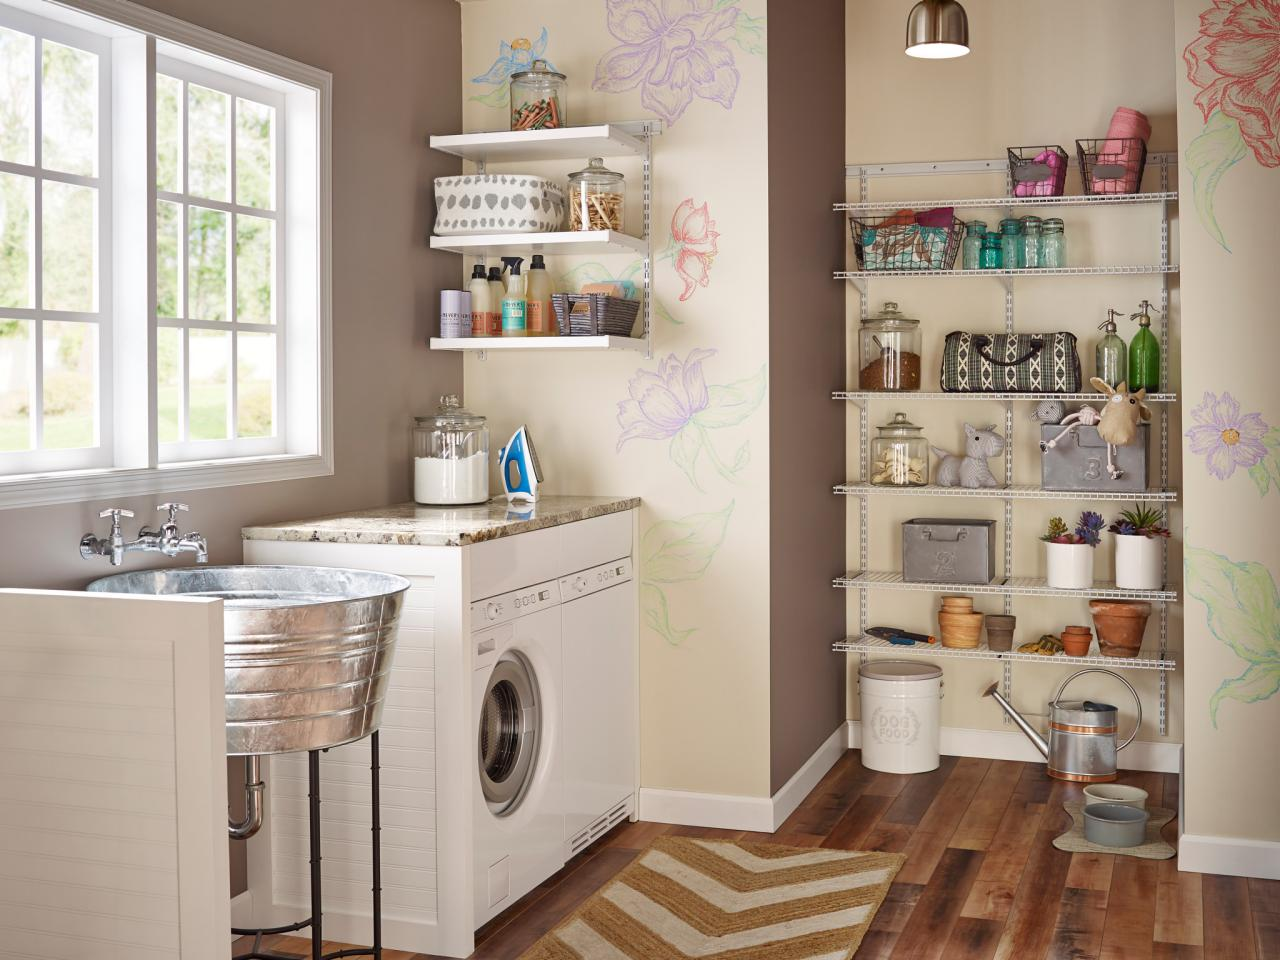 How Do Laundry Room Storing Solutions Work?